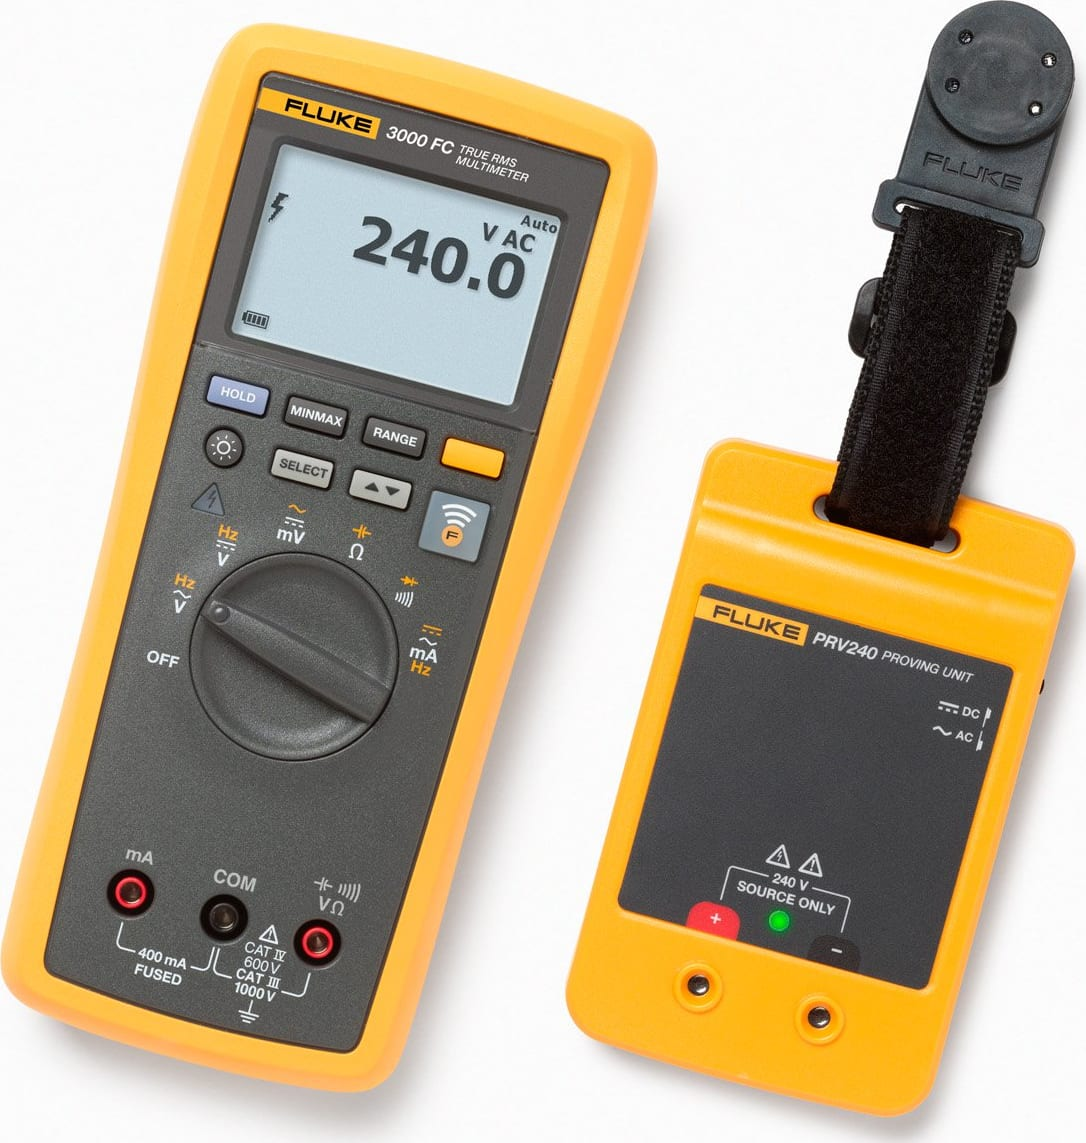 Fluke PRV240 Proving Unit Kit with 3000FC DMM